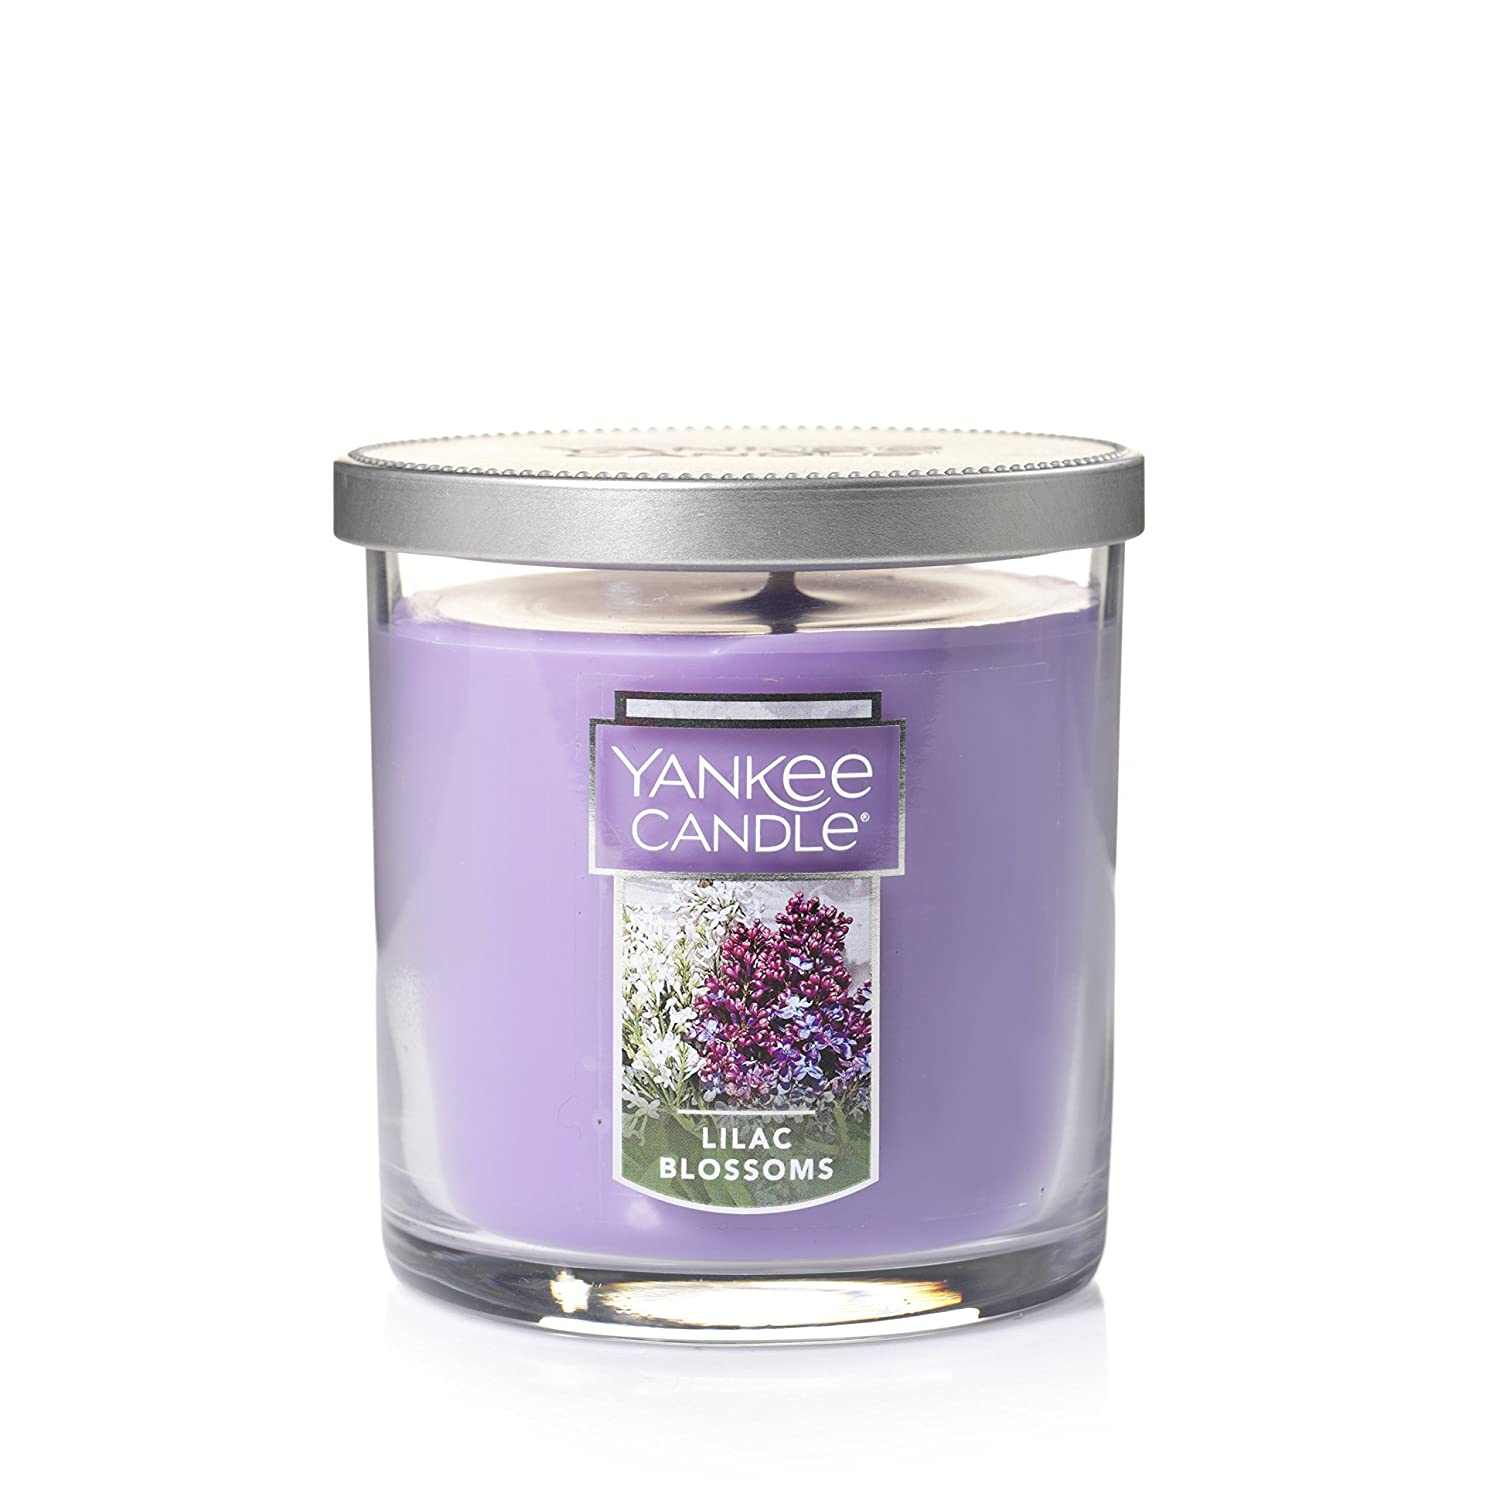 Yankee Candle Lilac Blossoms Small Single Wick Tumbler Candle, Floral Scent 1162787